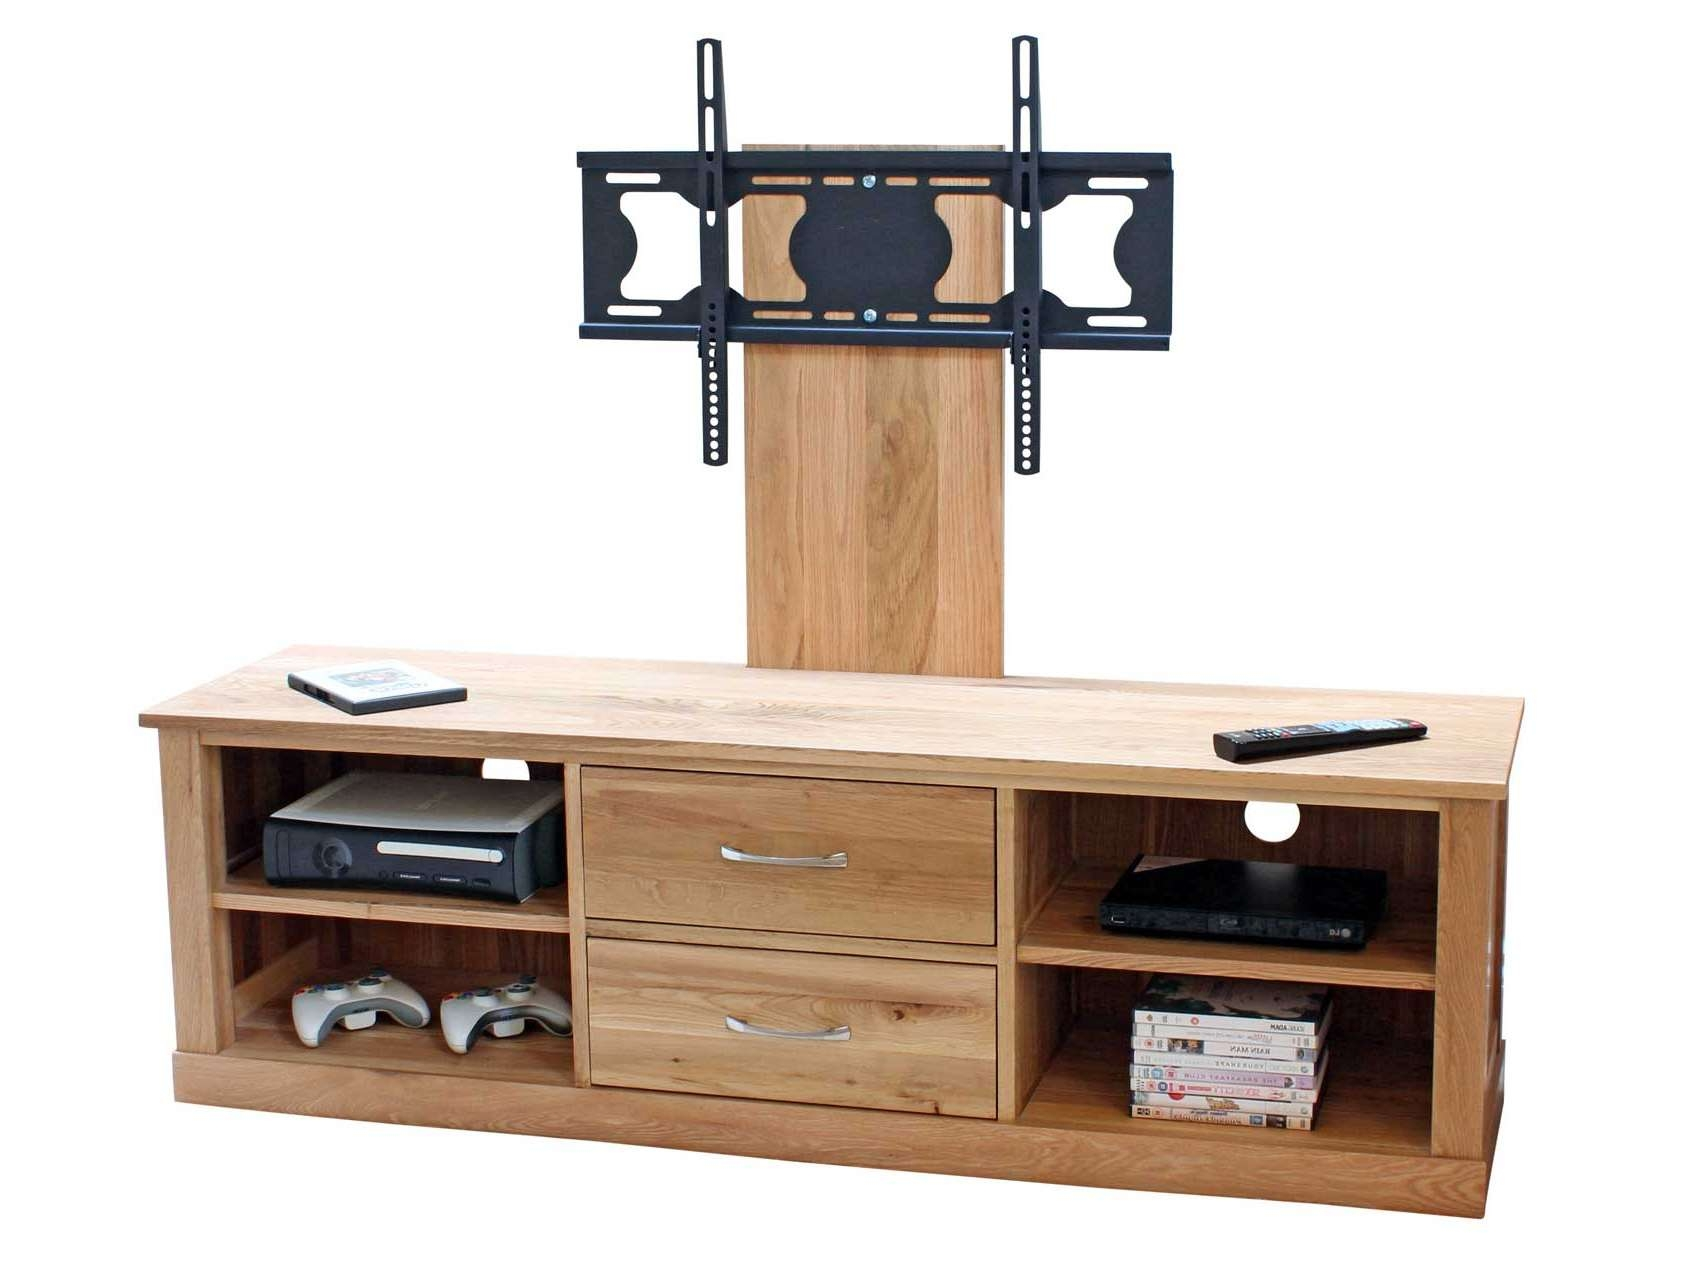 Classic Oak Television Unit With Mount Hampshire Furniture 3 For Wooden Tv Stands And Cabinets (View 9 of 15)